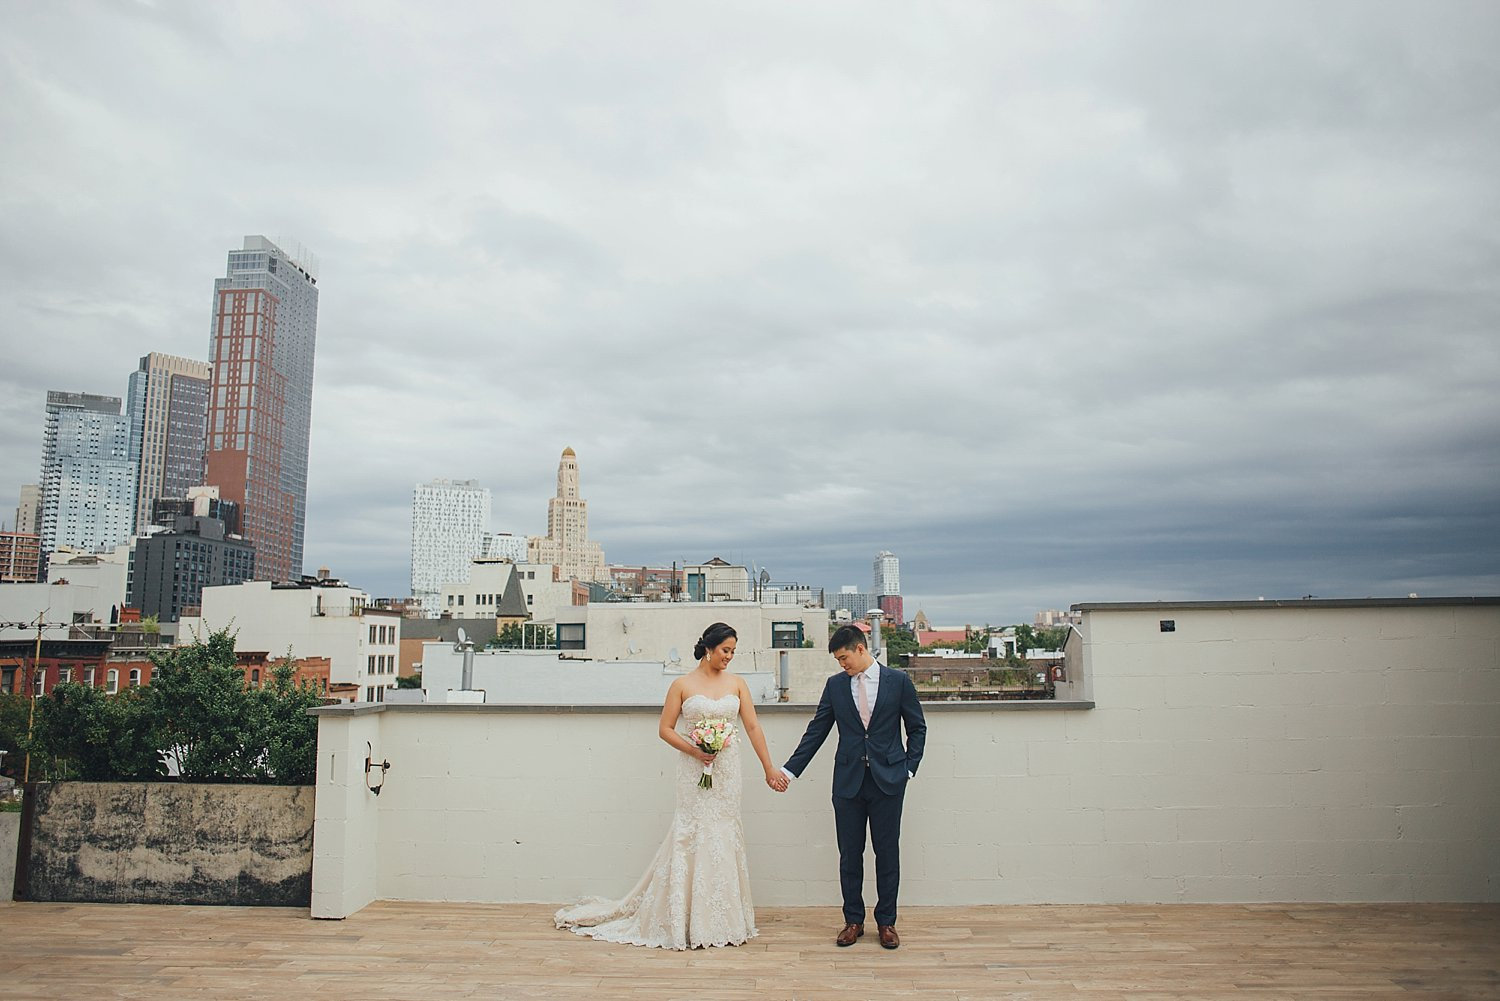 nyc-wedding-photography-nj-tri-state-cinematography-intothestory-by-moo-jae_0343.jpg